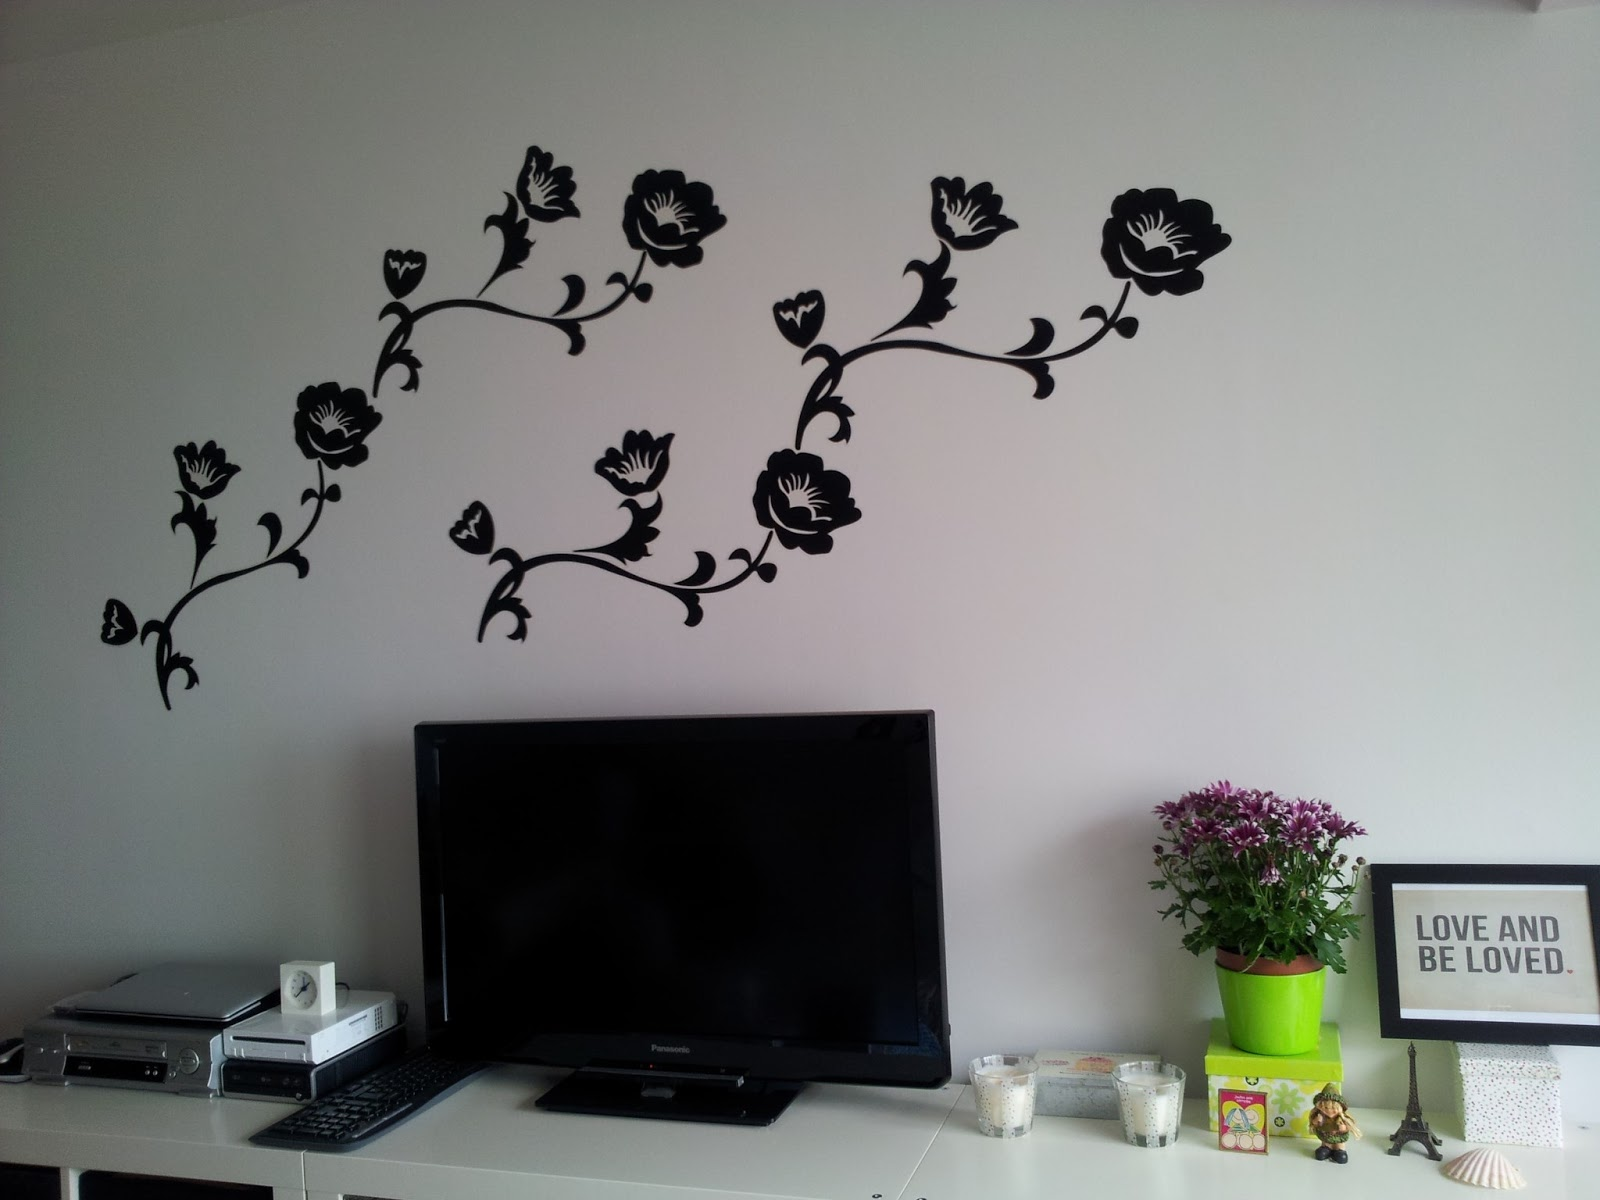 All in one decoraci n con vinilos - Vinilos pared ikea ...